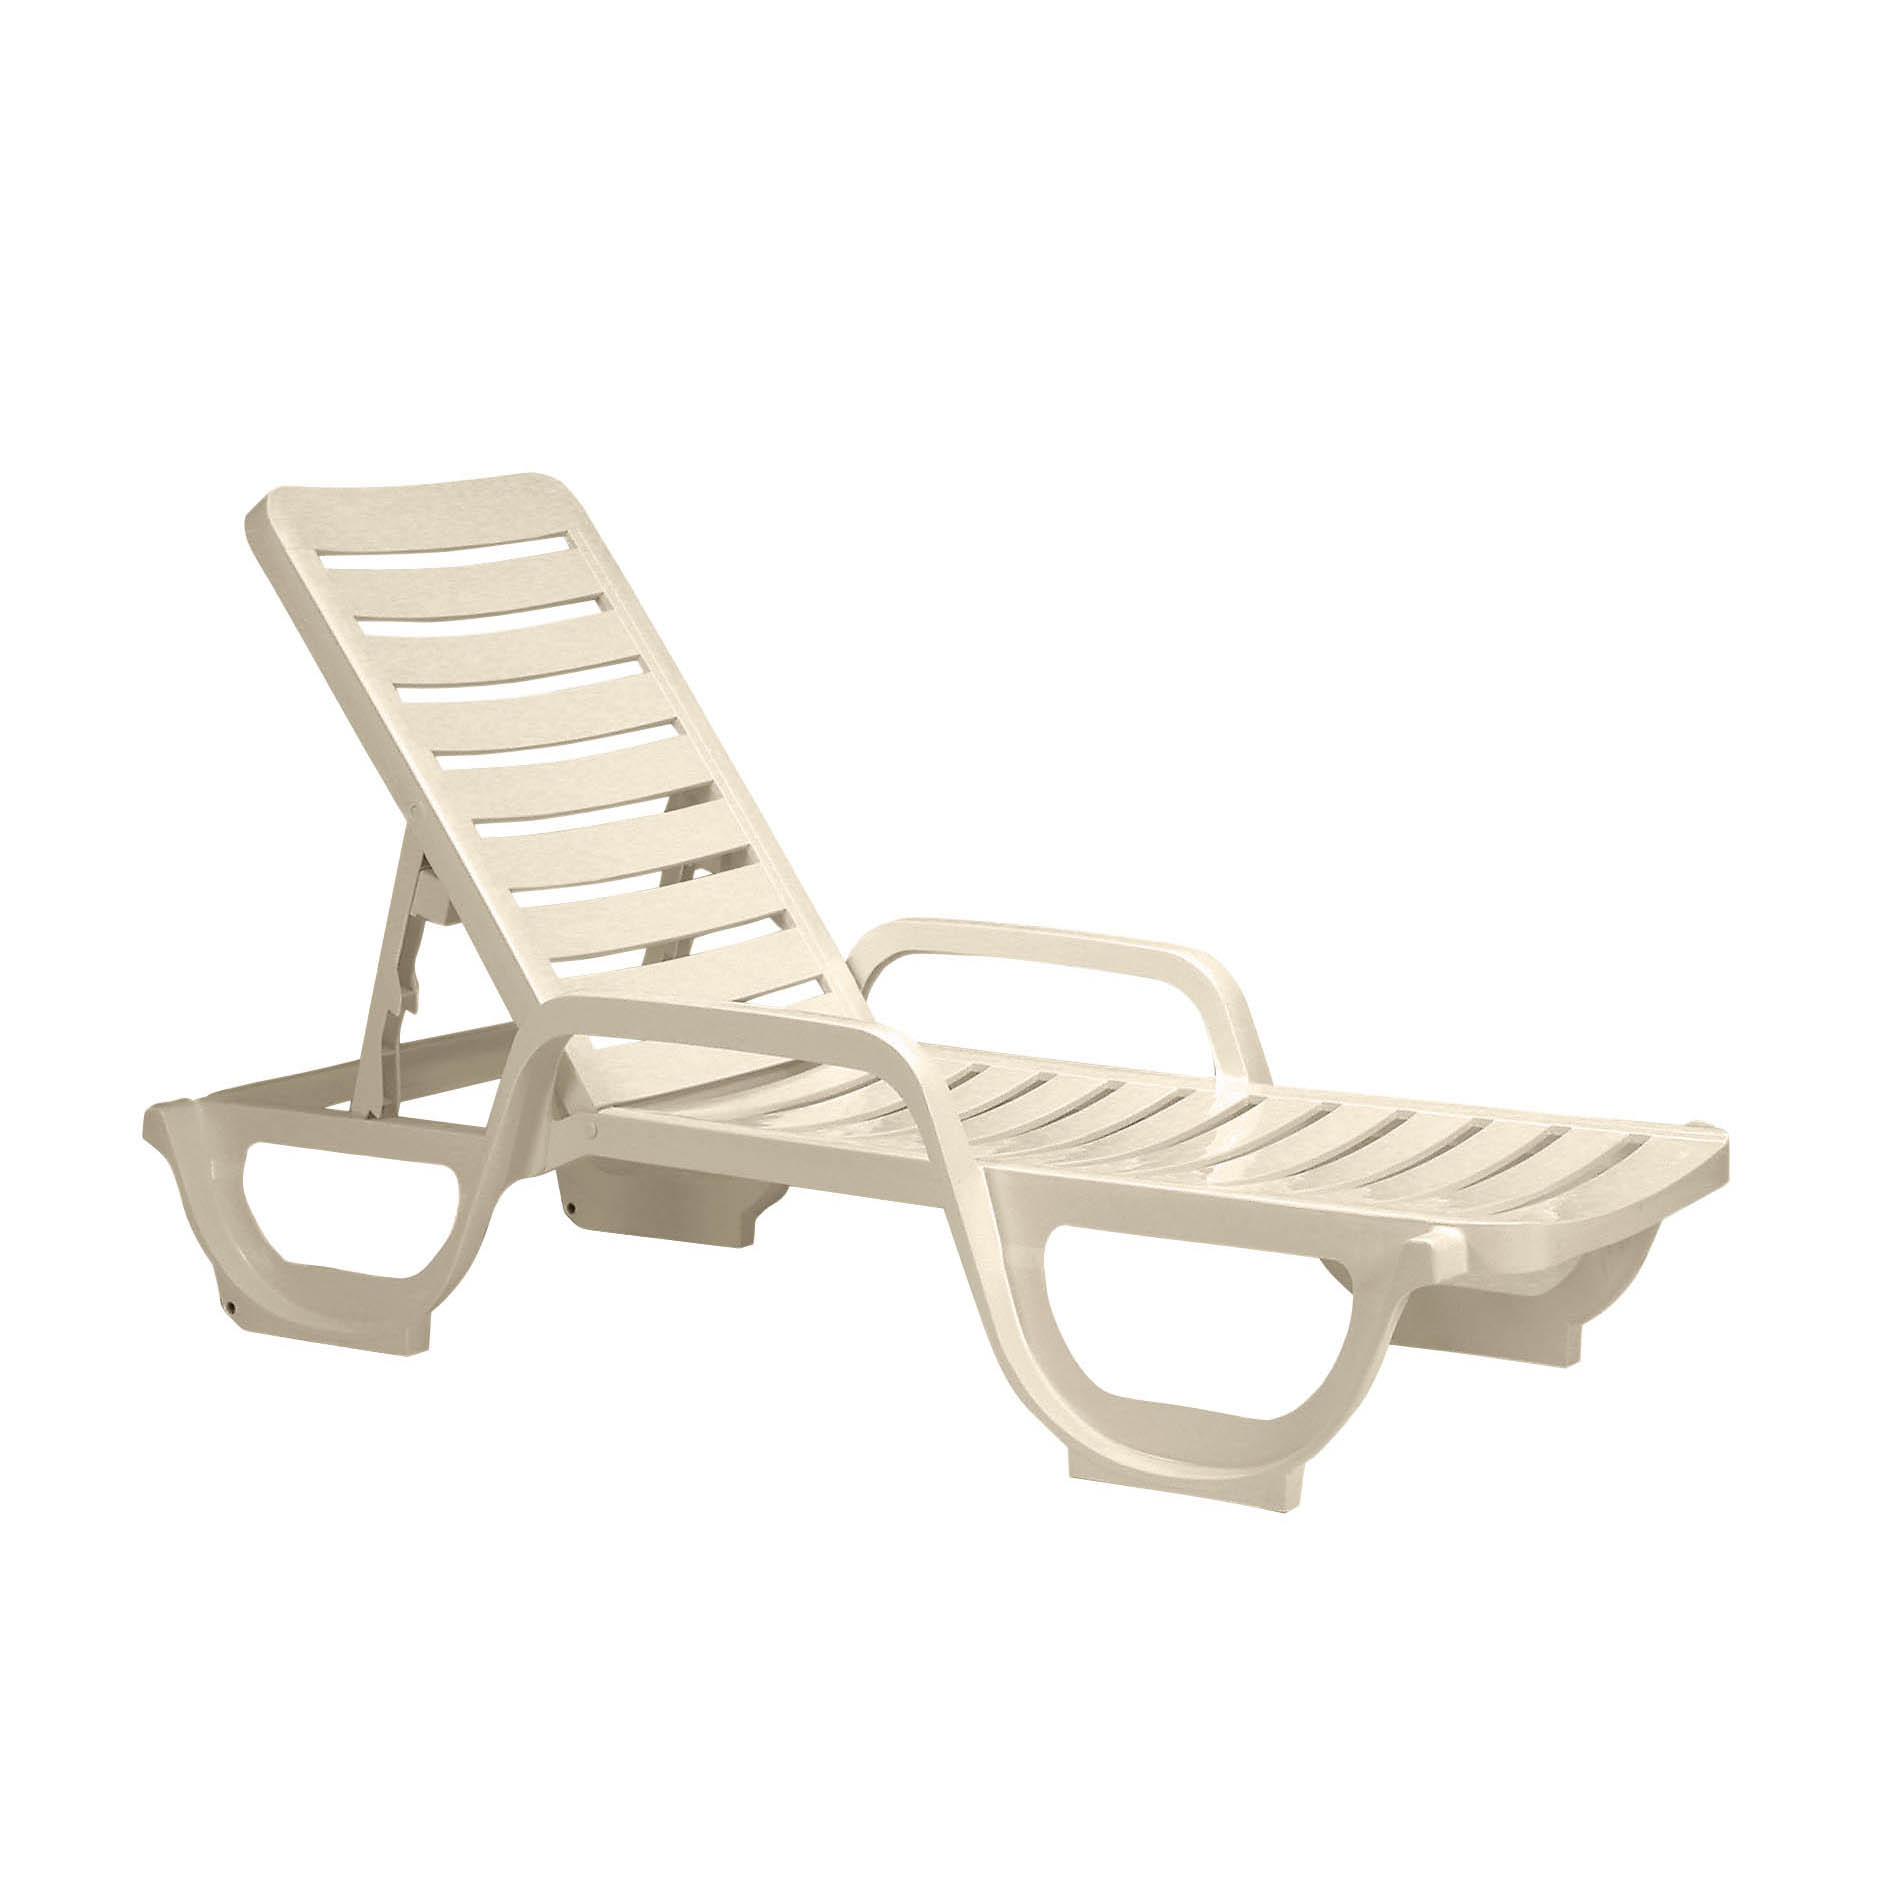 Grosfillex 44031166 chaise, outdoor